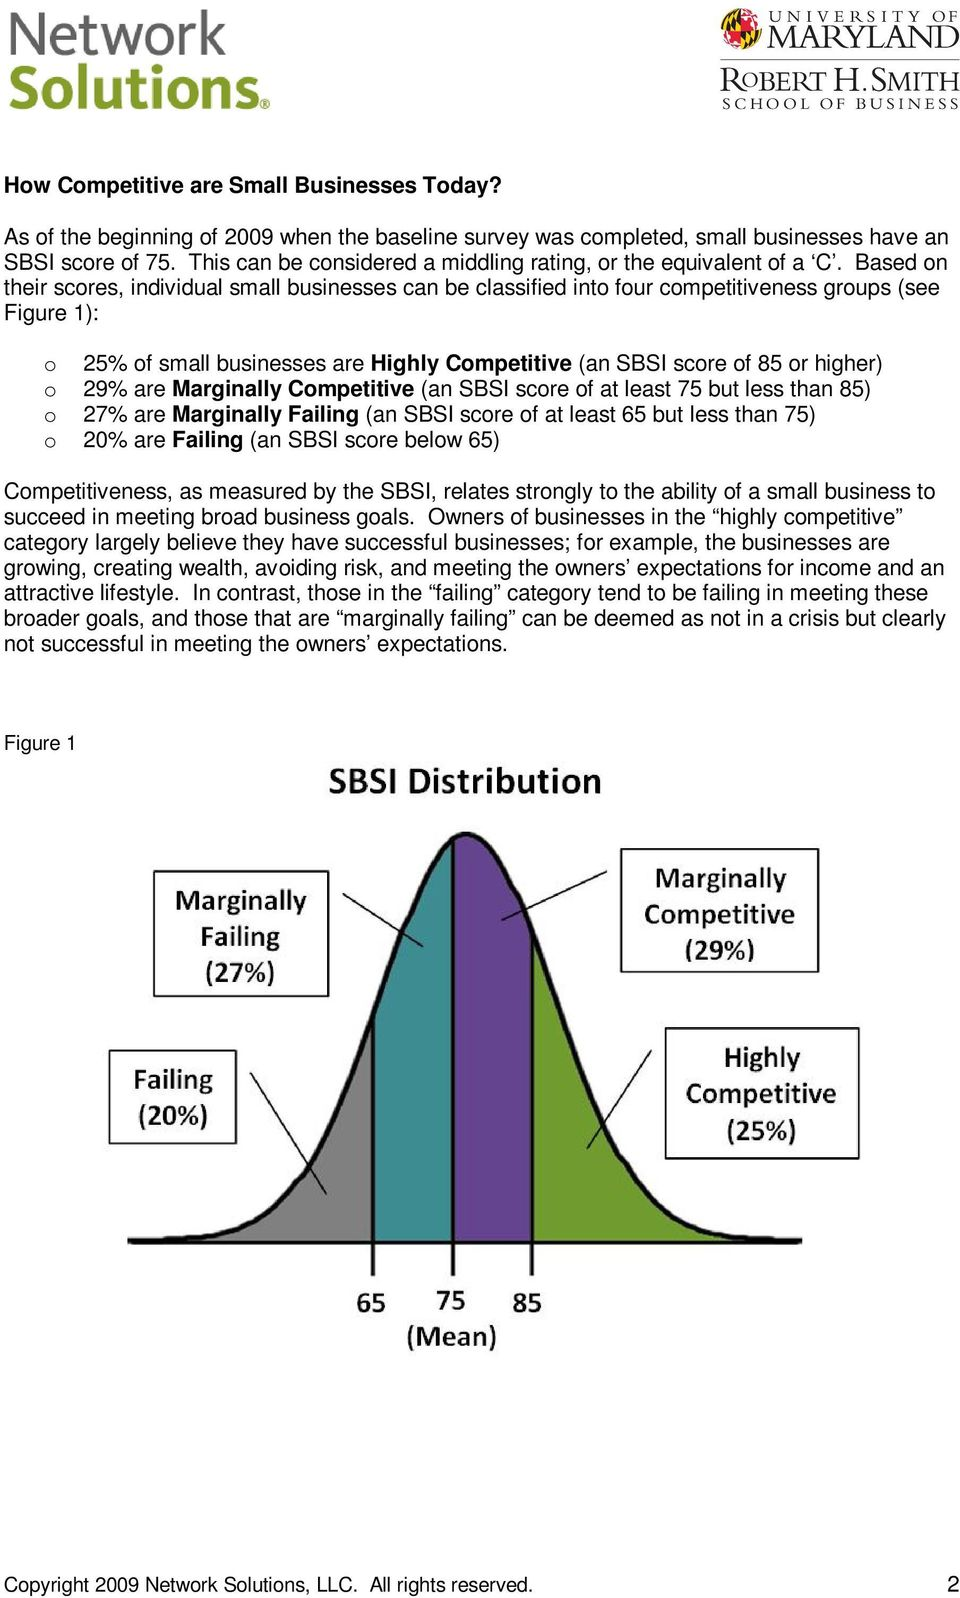 Based n their scres, individual small businesses can be classified int fur cmpetitiveness grups (see Figure 1): 25% f small businesses are Highly Cmpetitive (an SBSI scre f 85 r higher) 29% are